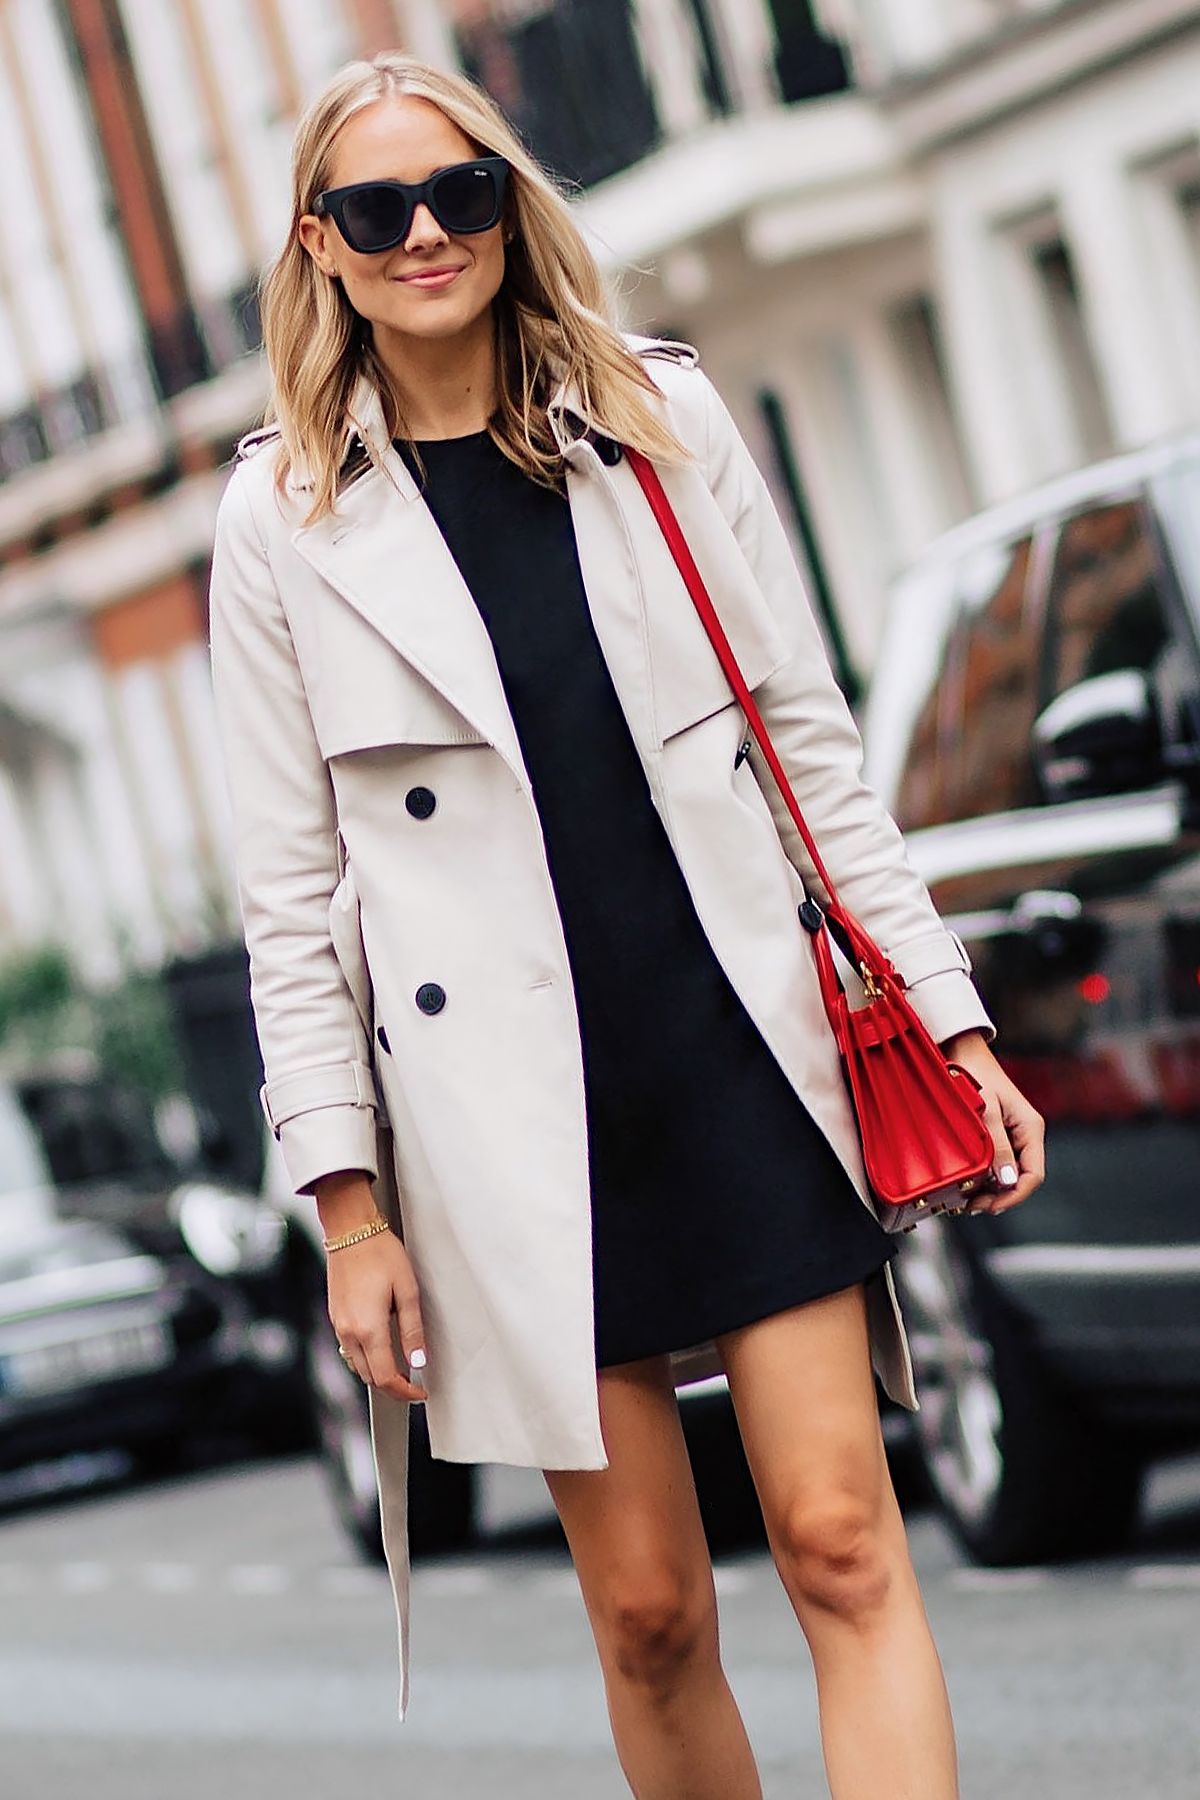 Blonde Woman Wearing Club Monaco Trench Coat Black Dress Outfit Red Handbag Fashion Jackson San Diego Fashion Blogger London Street Style